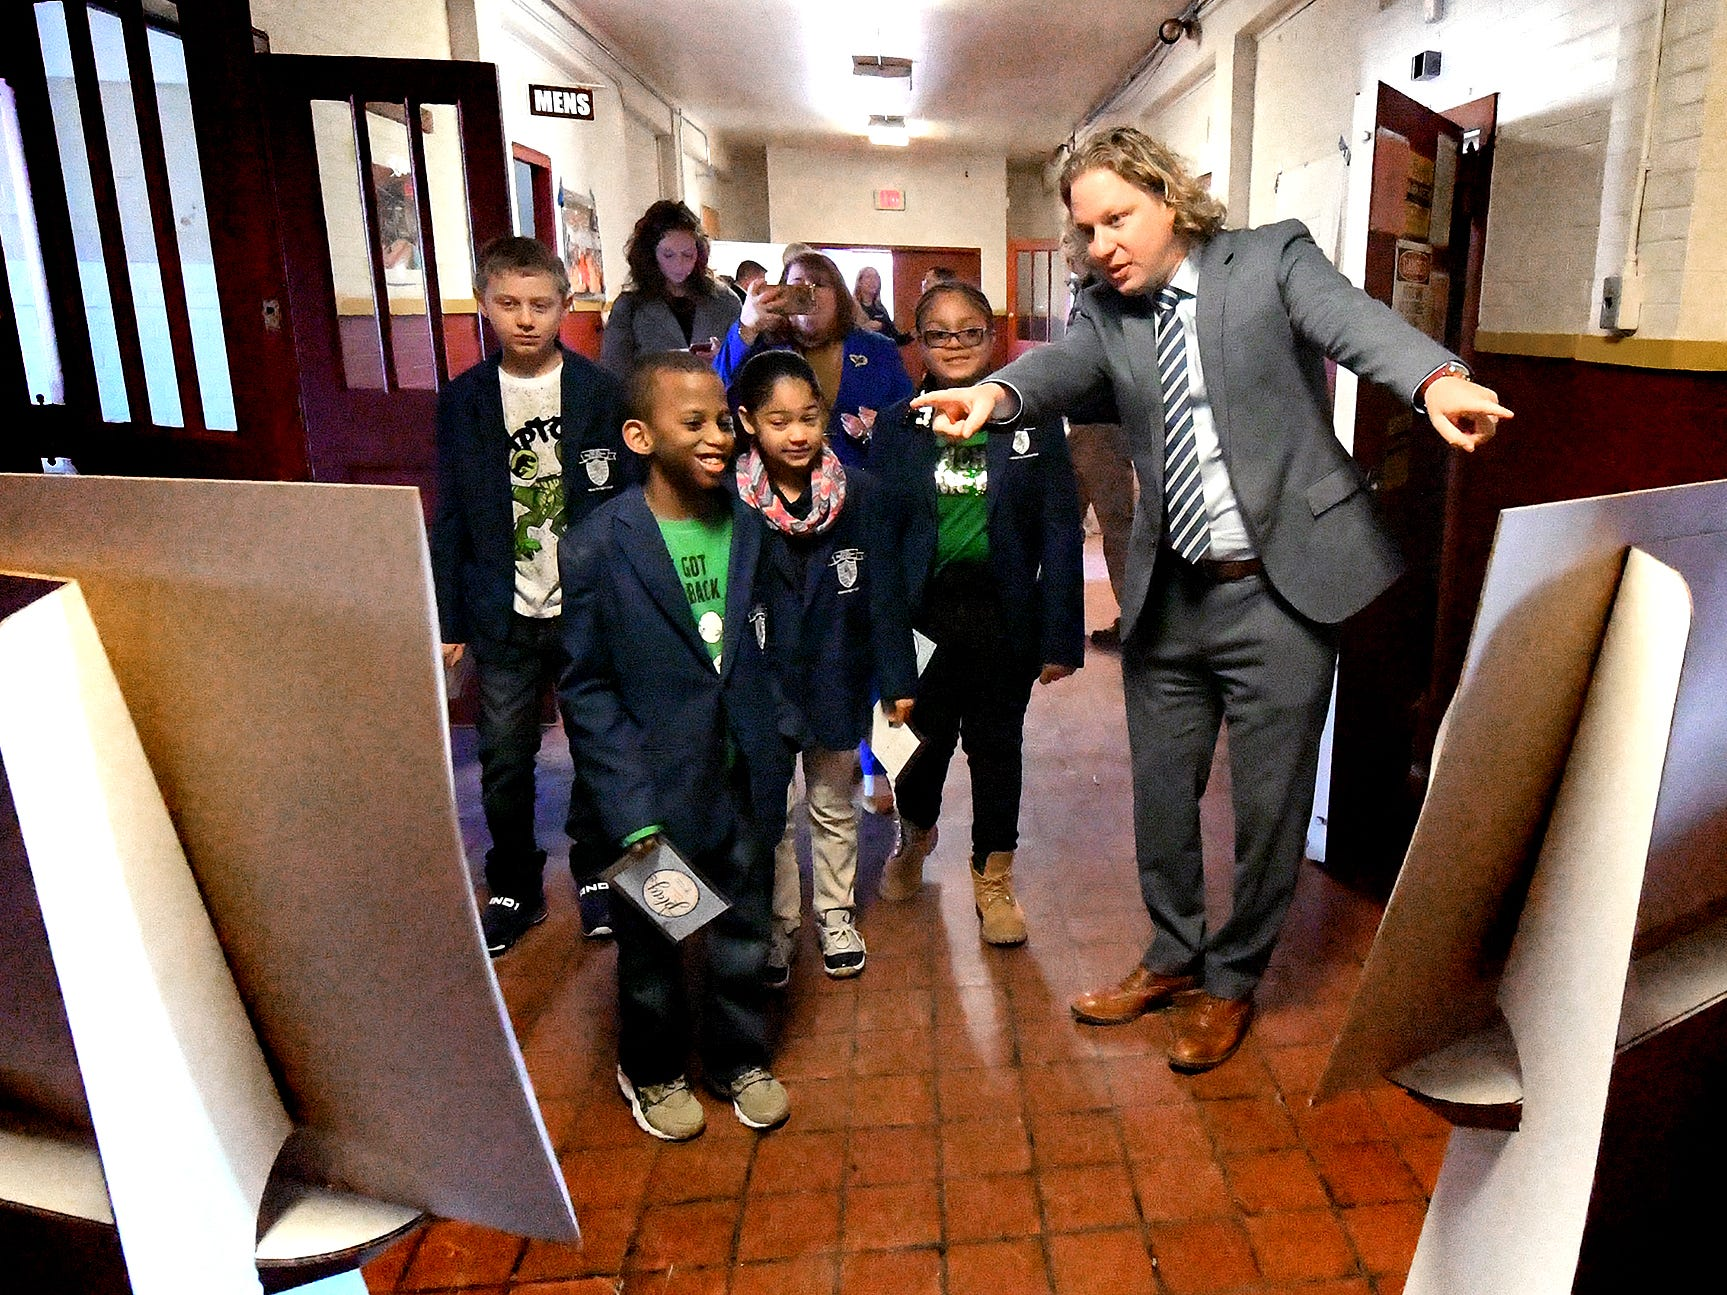 York County Economic Alliance CEO Kevin Schreiber tours the York Armory with Lincoln Charter School ambassadors during a press event there Thursday, Feb. 28, 2019. Keystone Kidspace founders announced the launch of a $6 million capital campaign to transform the former armory building into an experiential learning center. Construction is slated to start this summer with an opening date of summer 2020. Bill Kalina photo